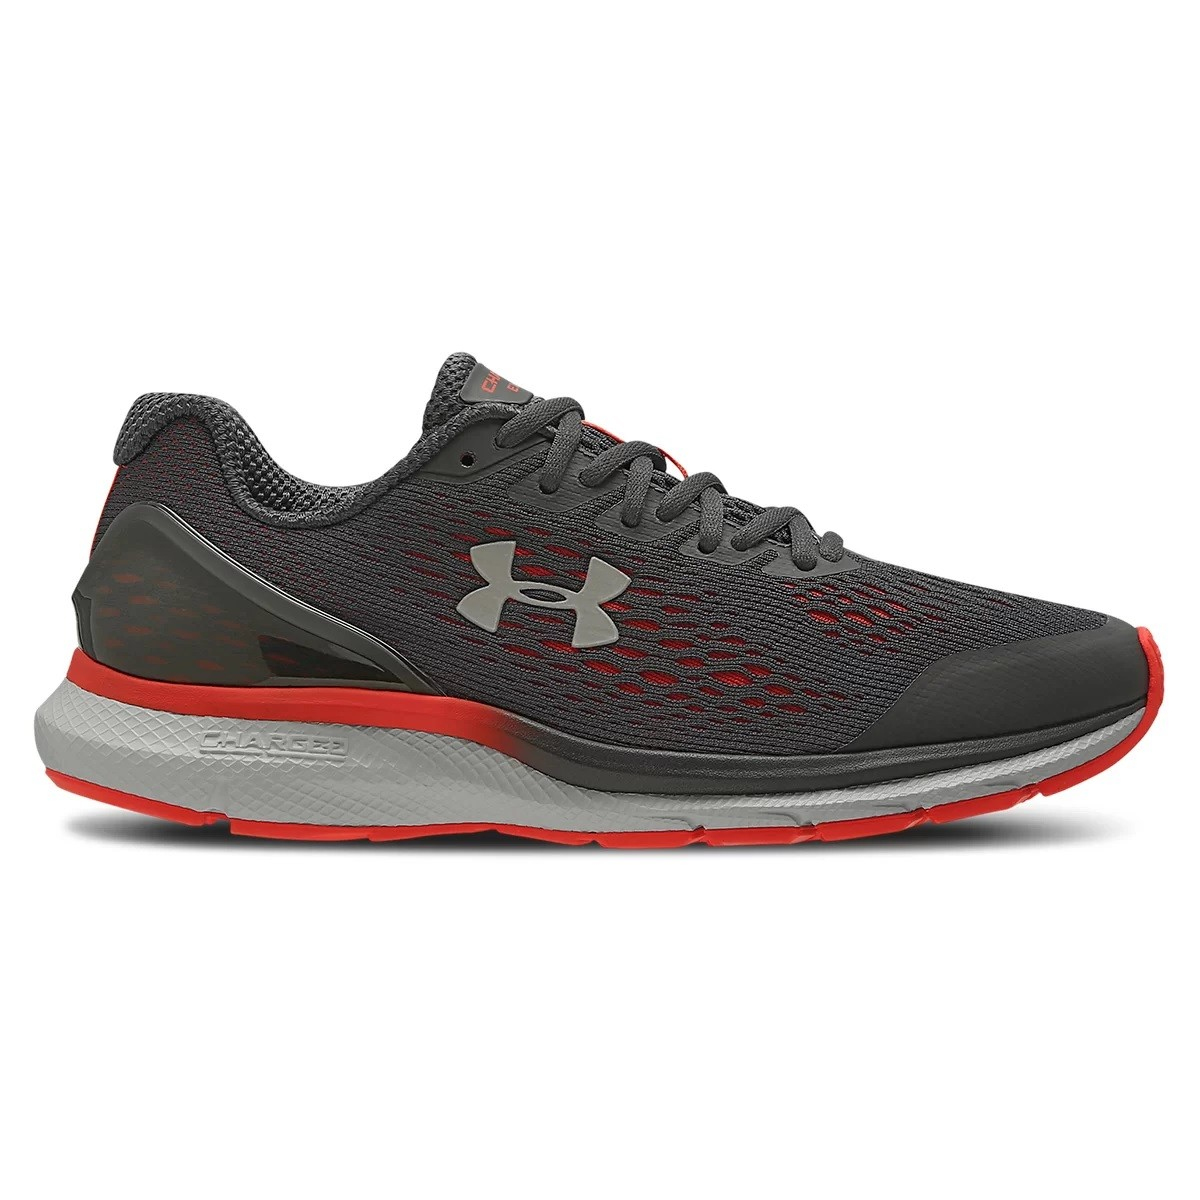 Tênis Under Armour Charged Extend Masculino Grafite e Vermelho